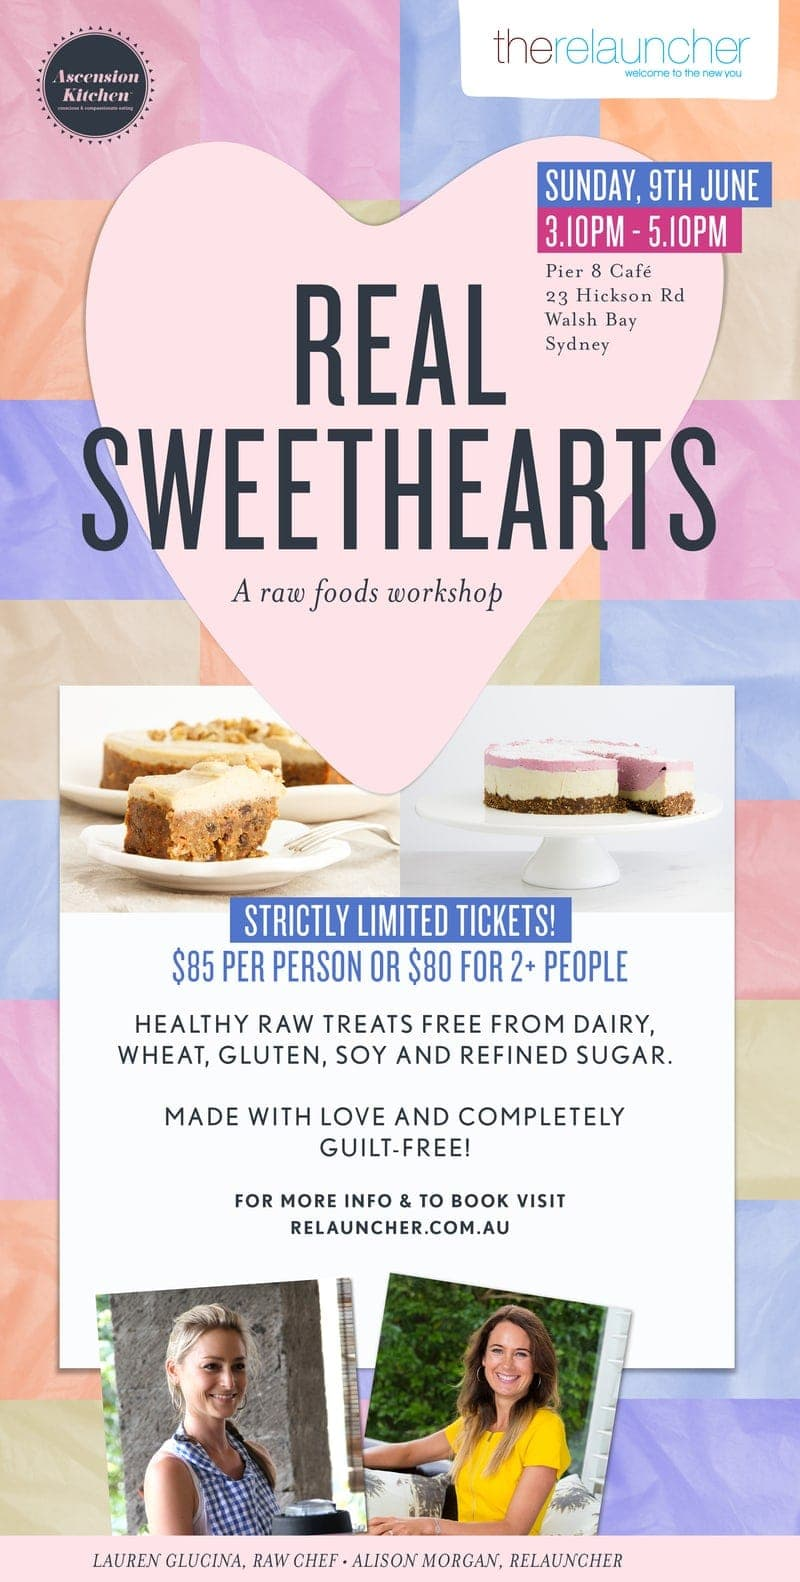 Real Sweethearts - A Raw Foods Workshop - Ascension Kitchen